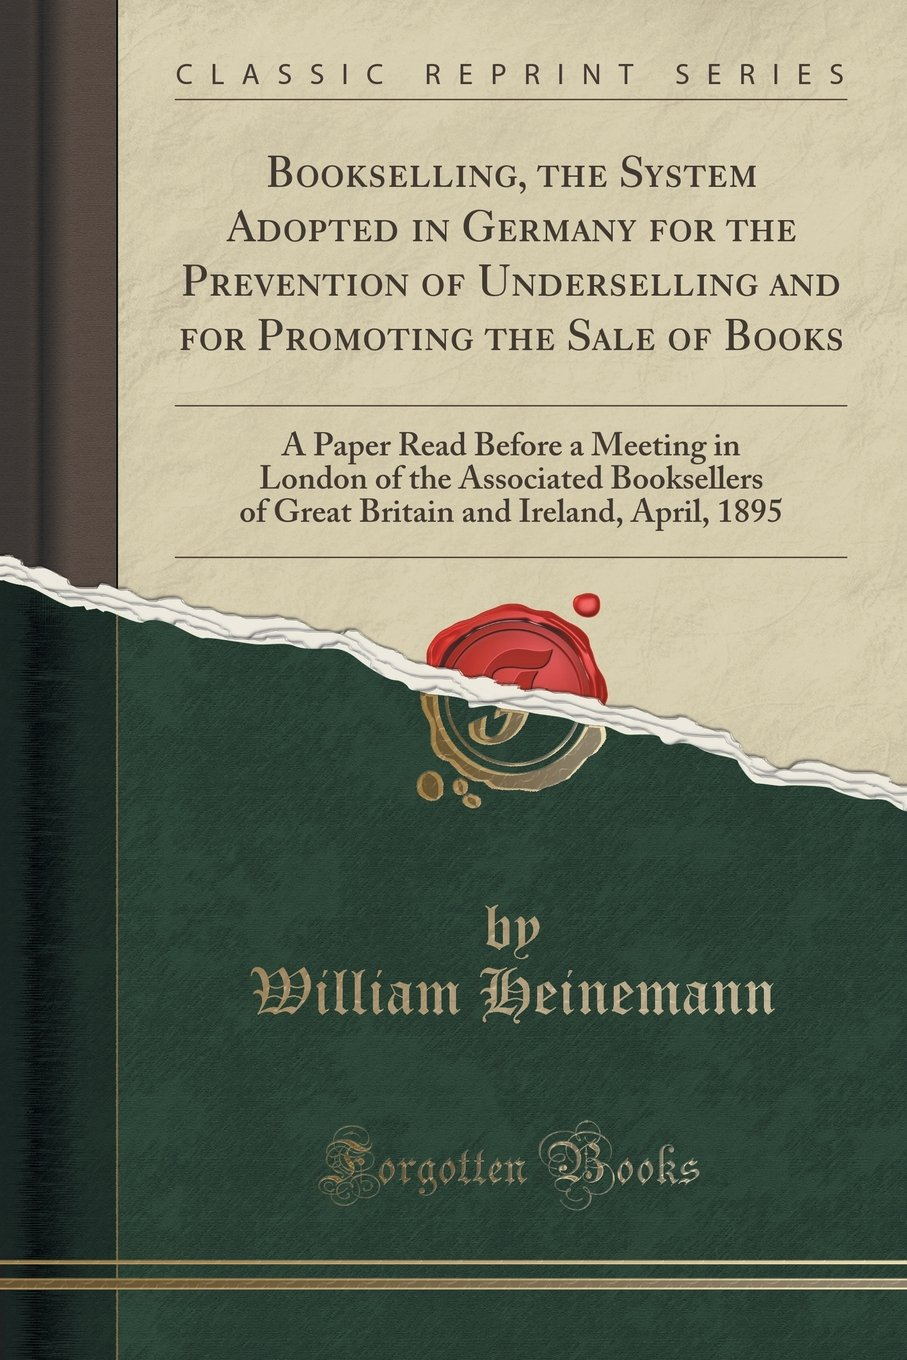 Bookselling, the System Adopted in Germany for the Prevention of Underselling and for Promoting the Sale of Books: A Paper Read Before a Meeting in ... and Ireland, April, 1895 (Classic Reprint) pdf epub